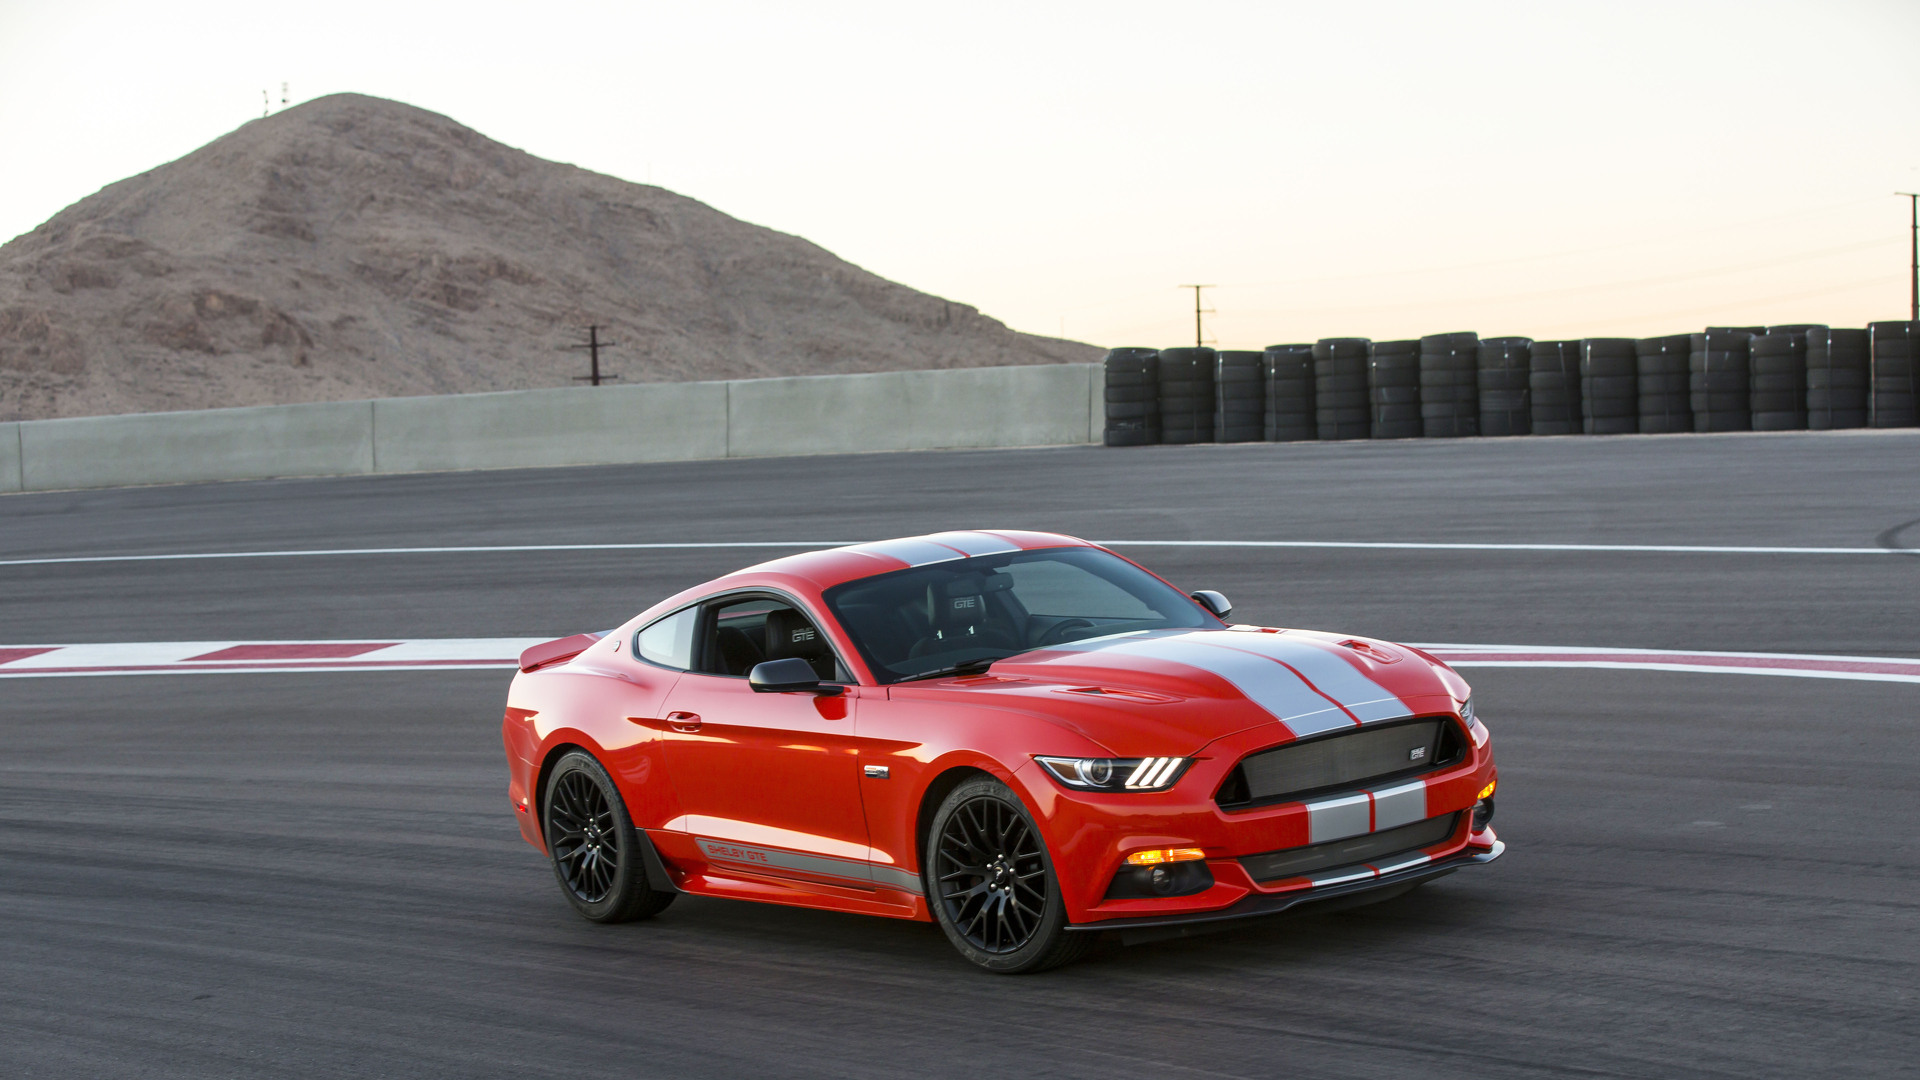 Ford Mustang Shelby GTE – if the GT350 is too much Image 545410